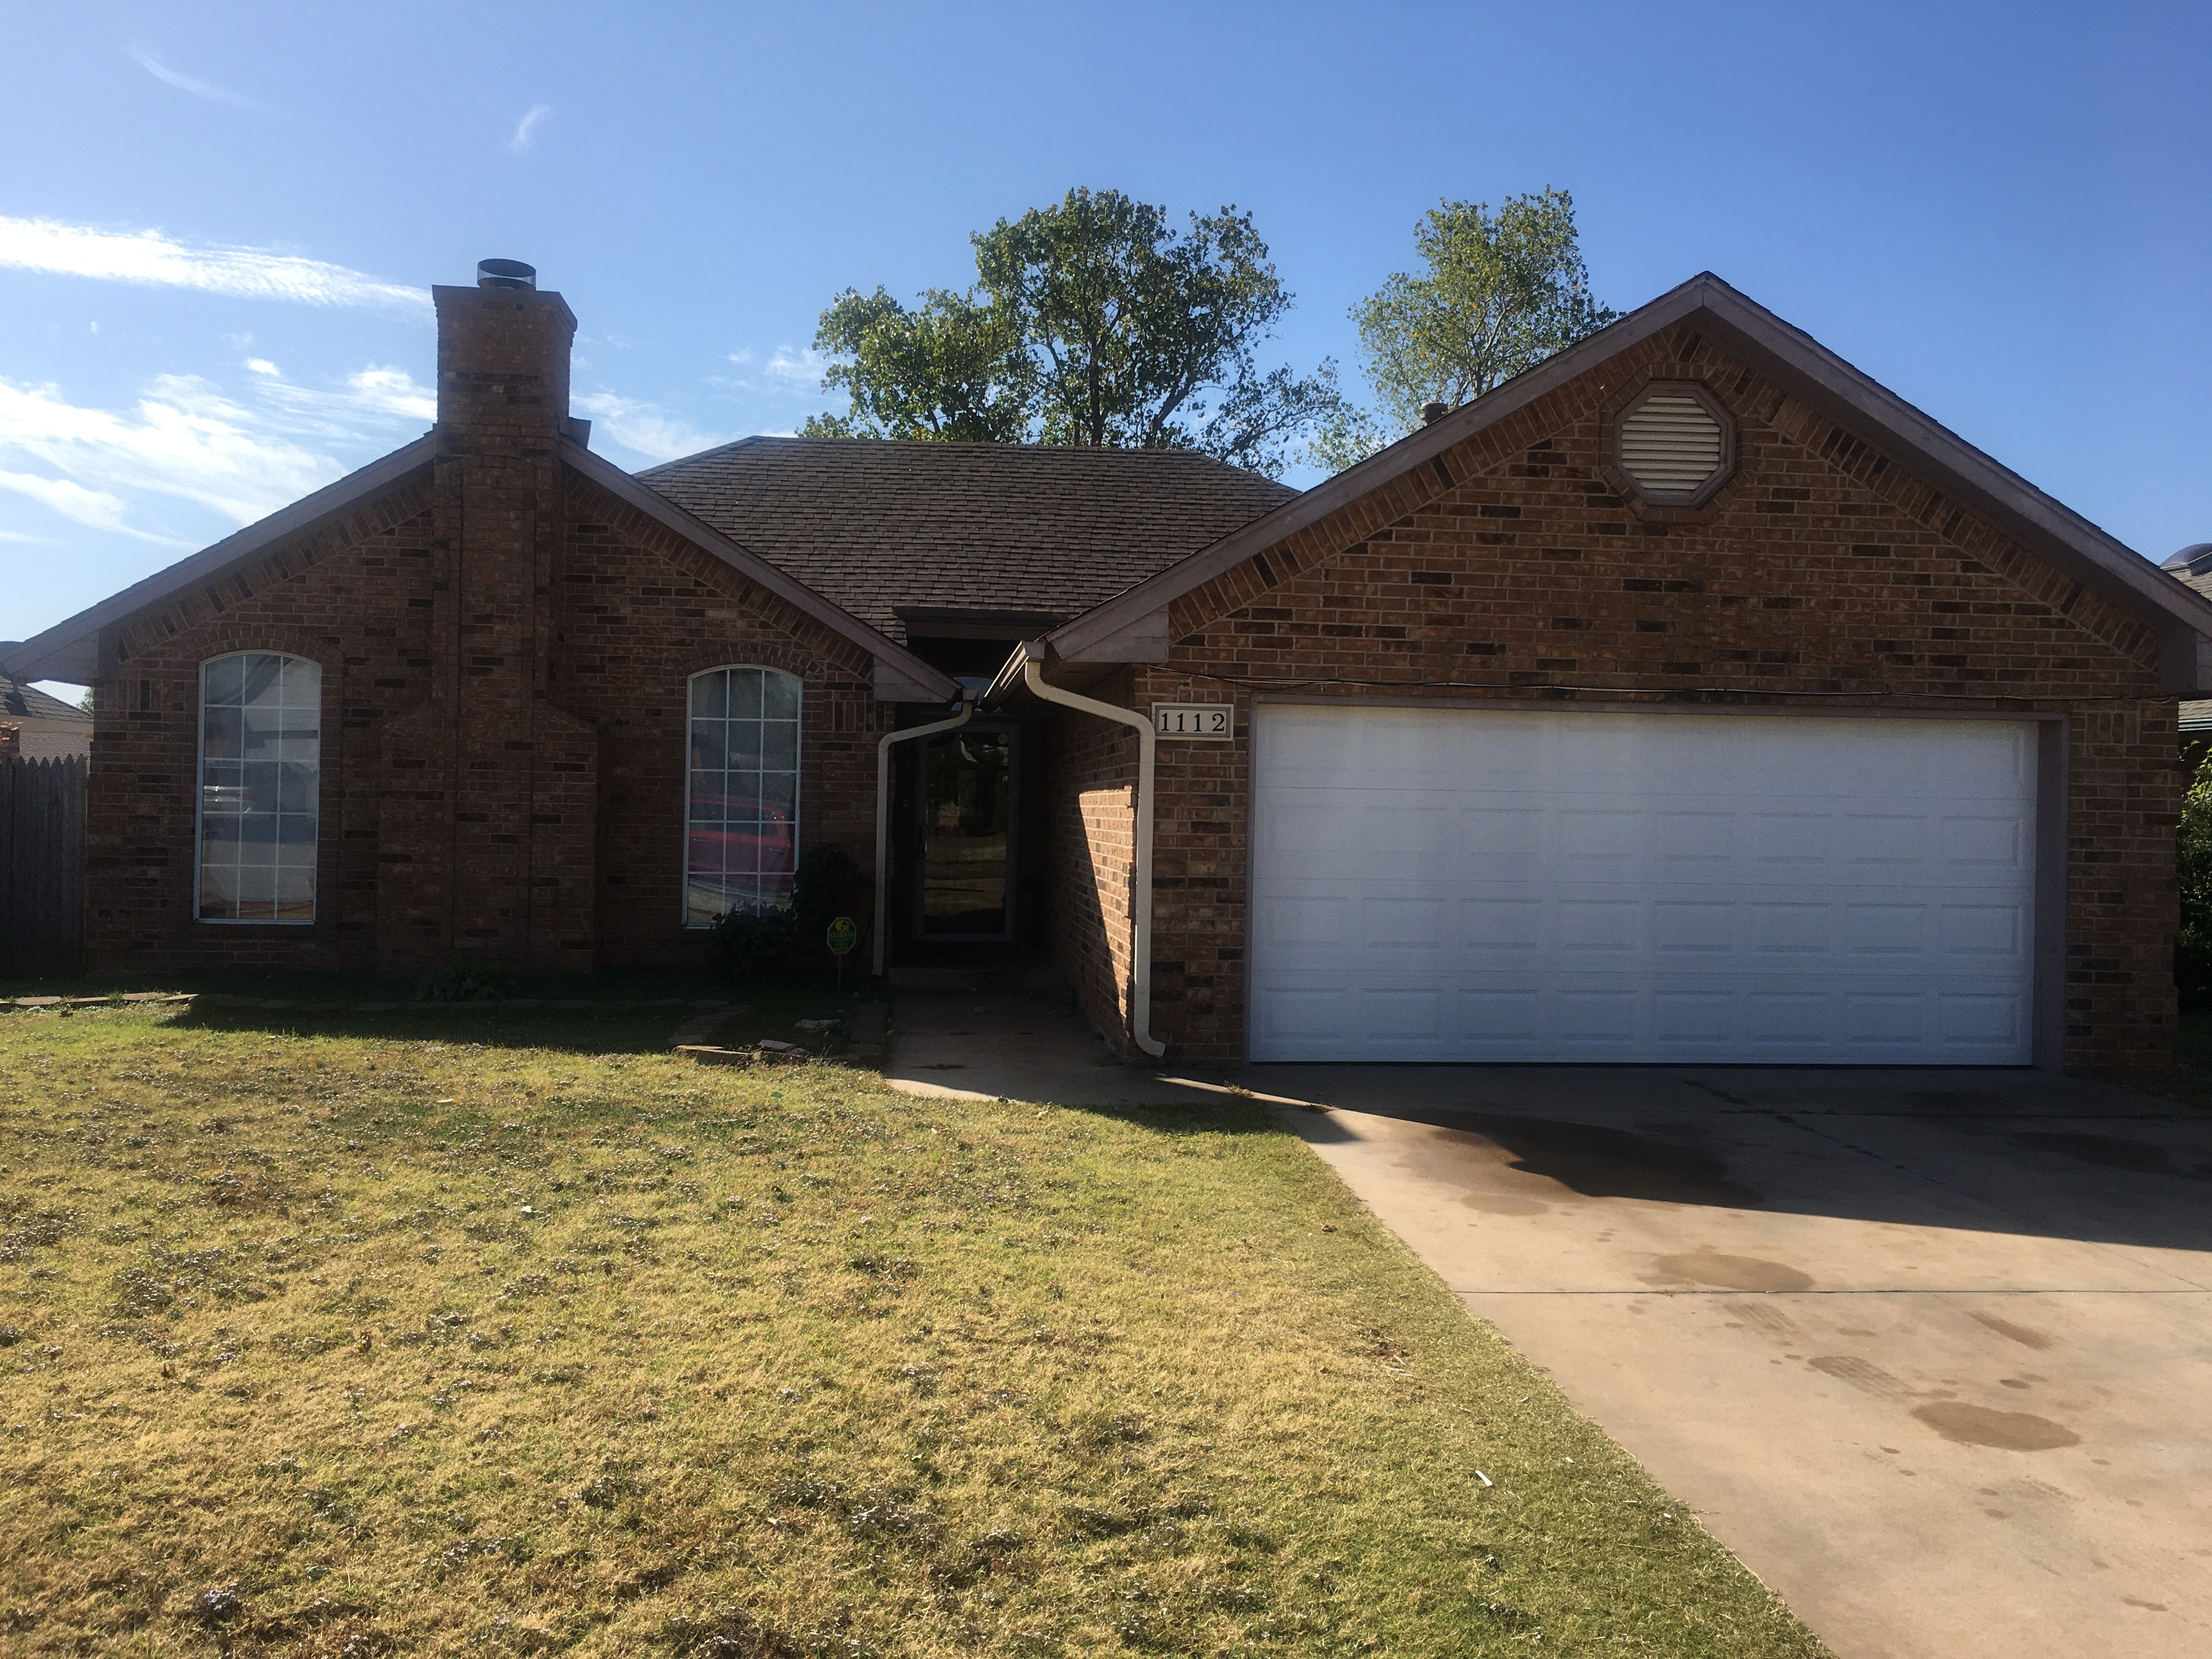 For Rent: 1112 N.E. 25th Street, Moore, Oklahoma